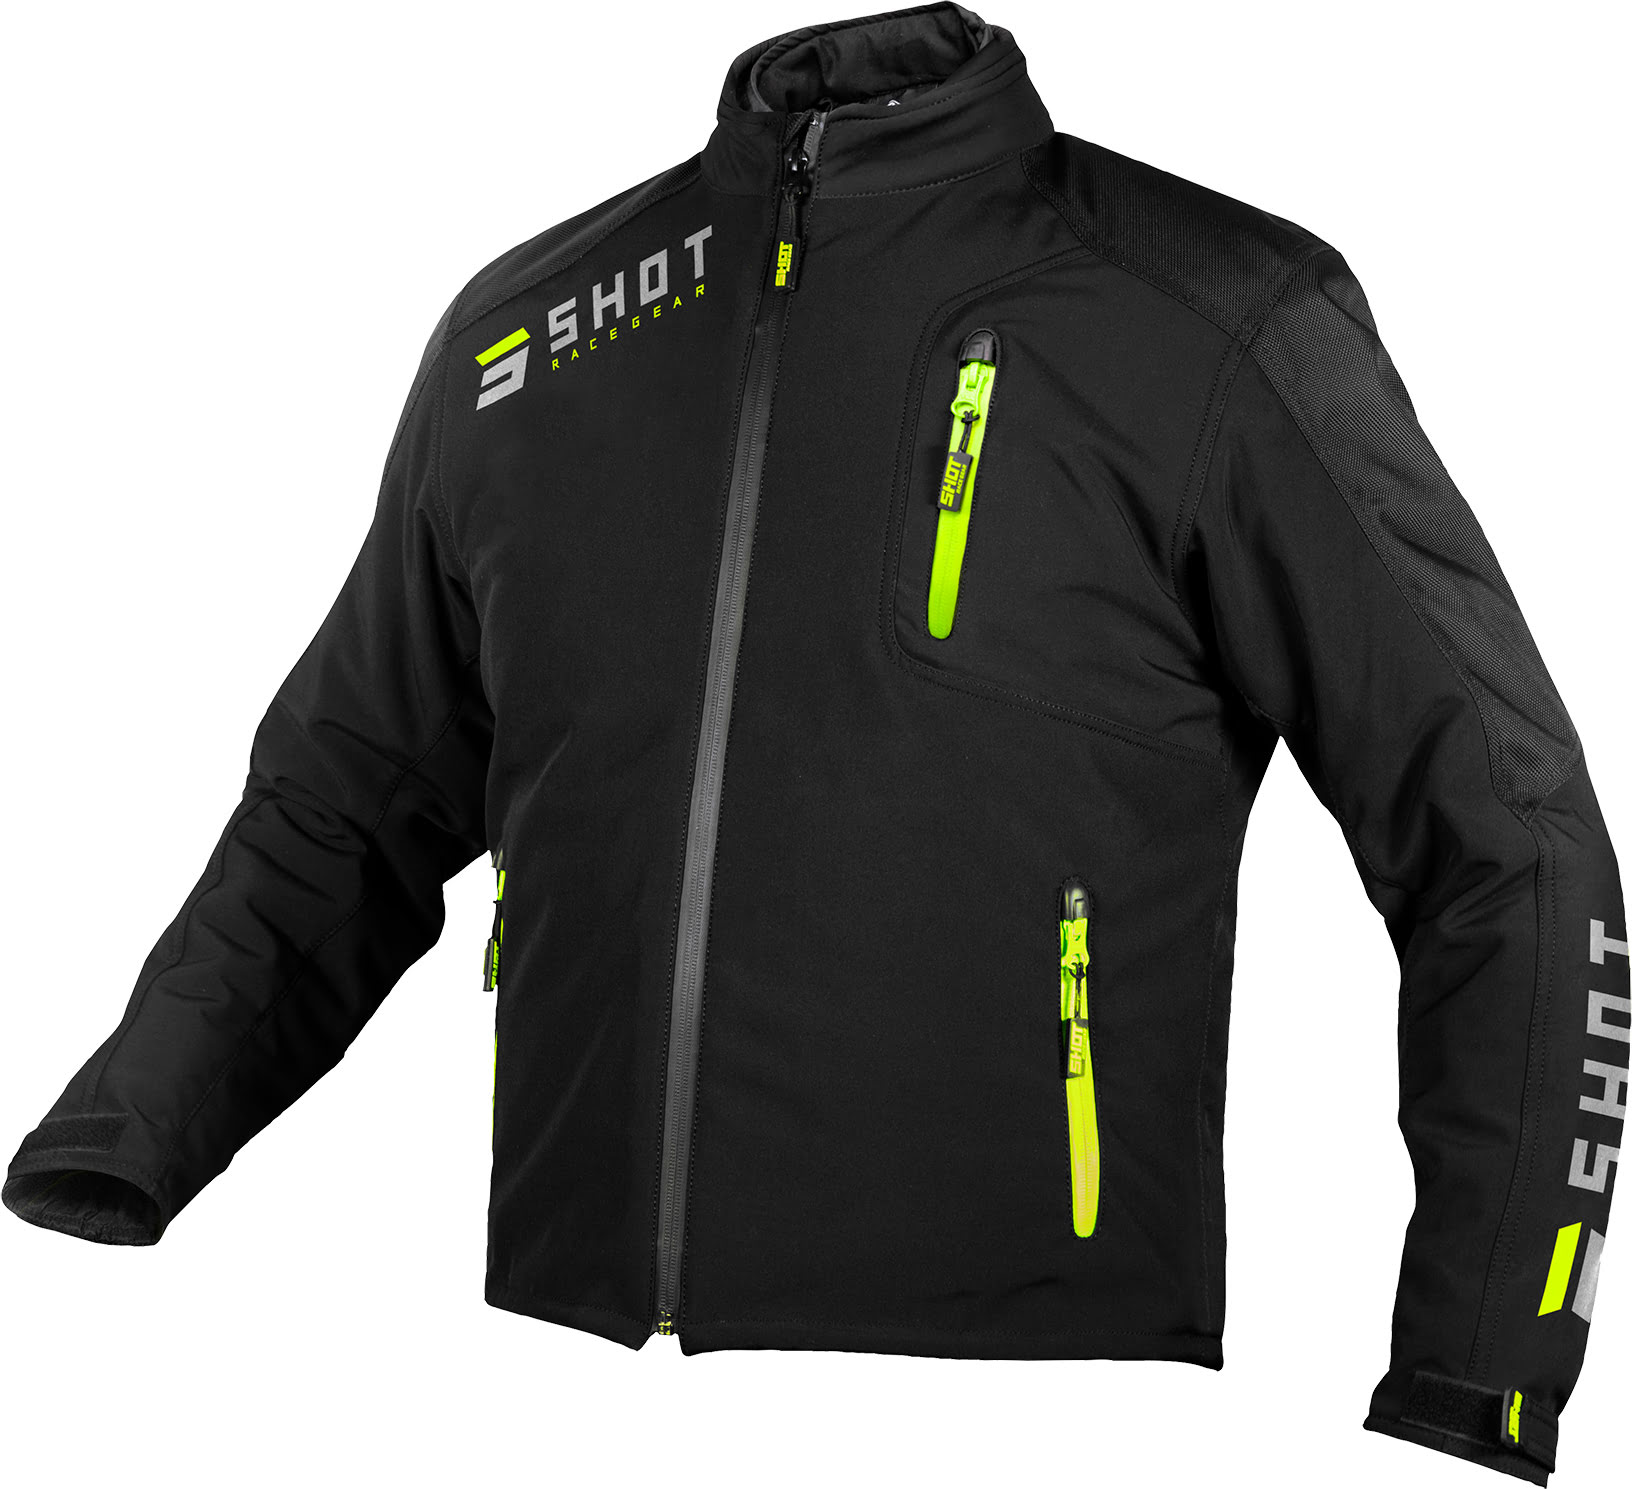 RIDING GEAR CLIMATIC BLACK NEON YELLOW